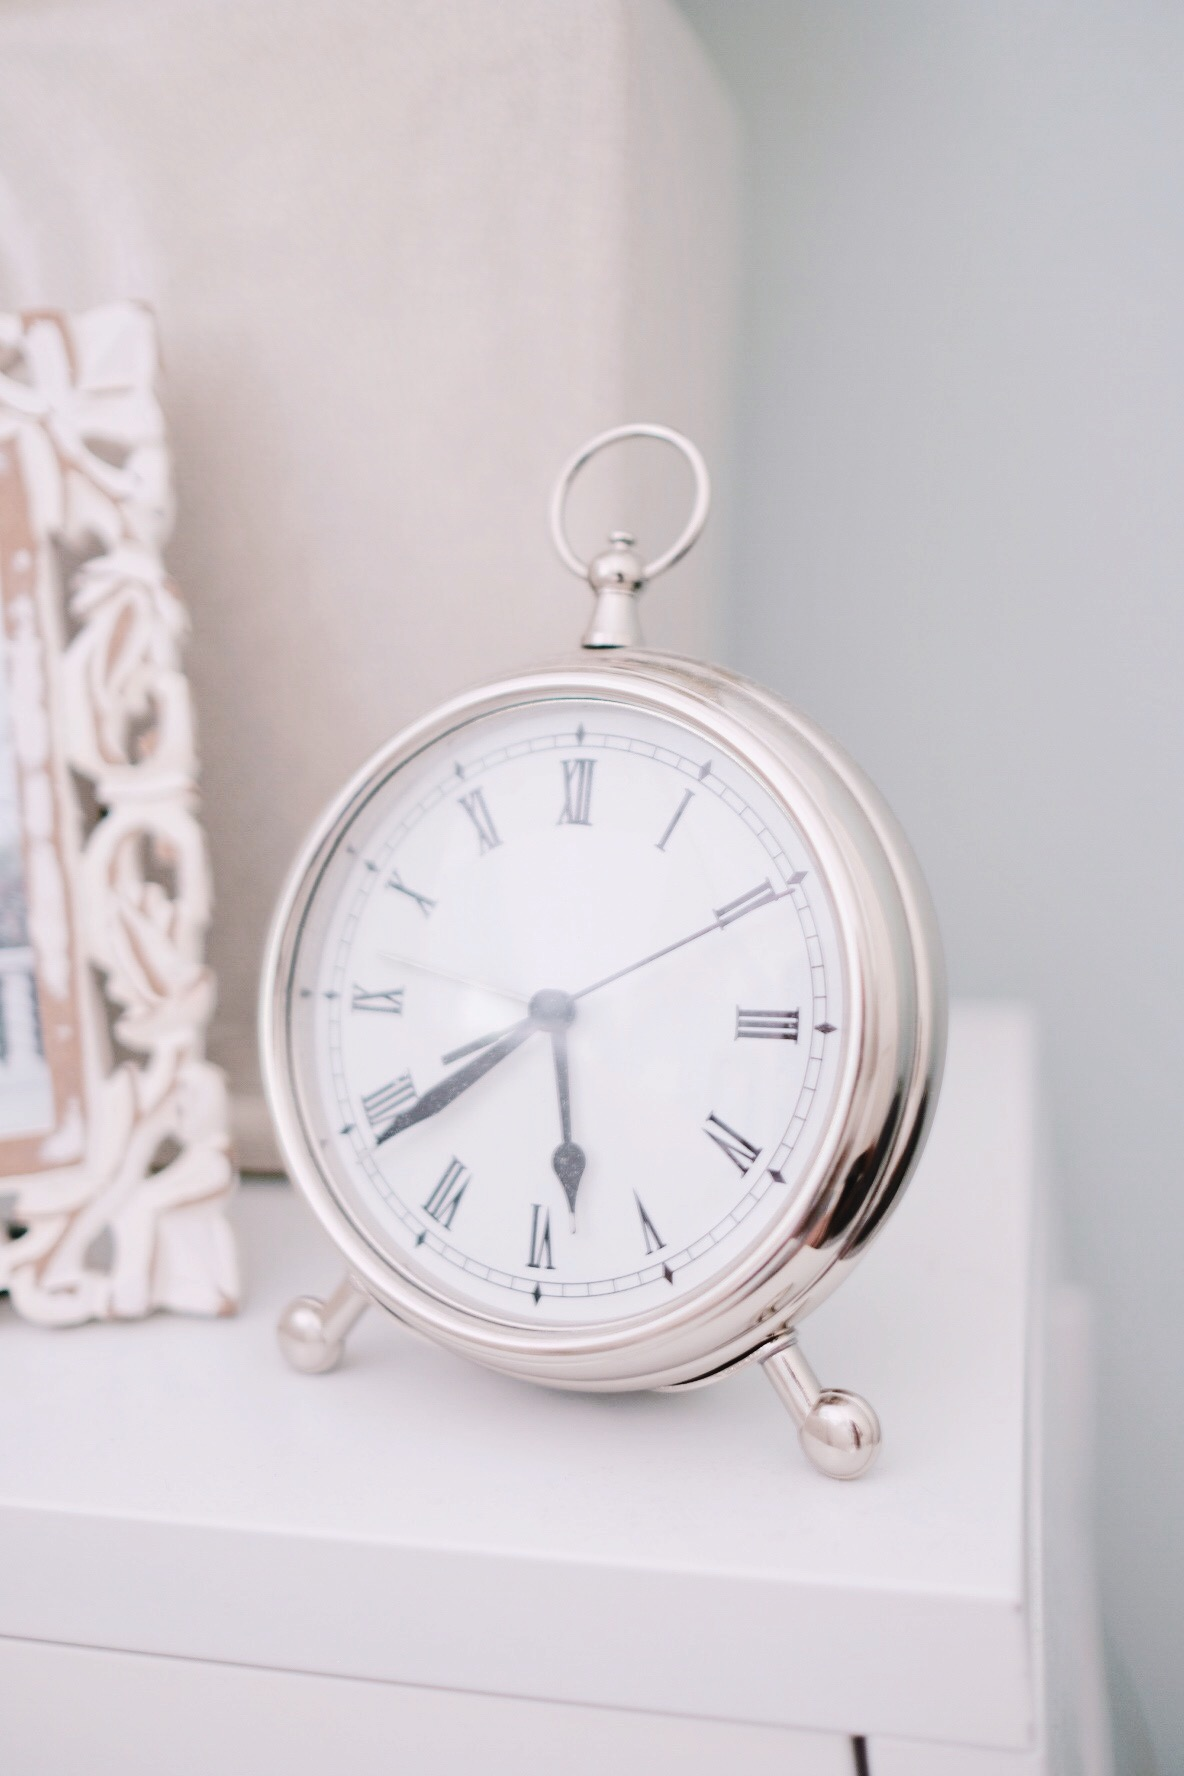 Pottery Barn Alarm Clock | Miss Madeline Rose